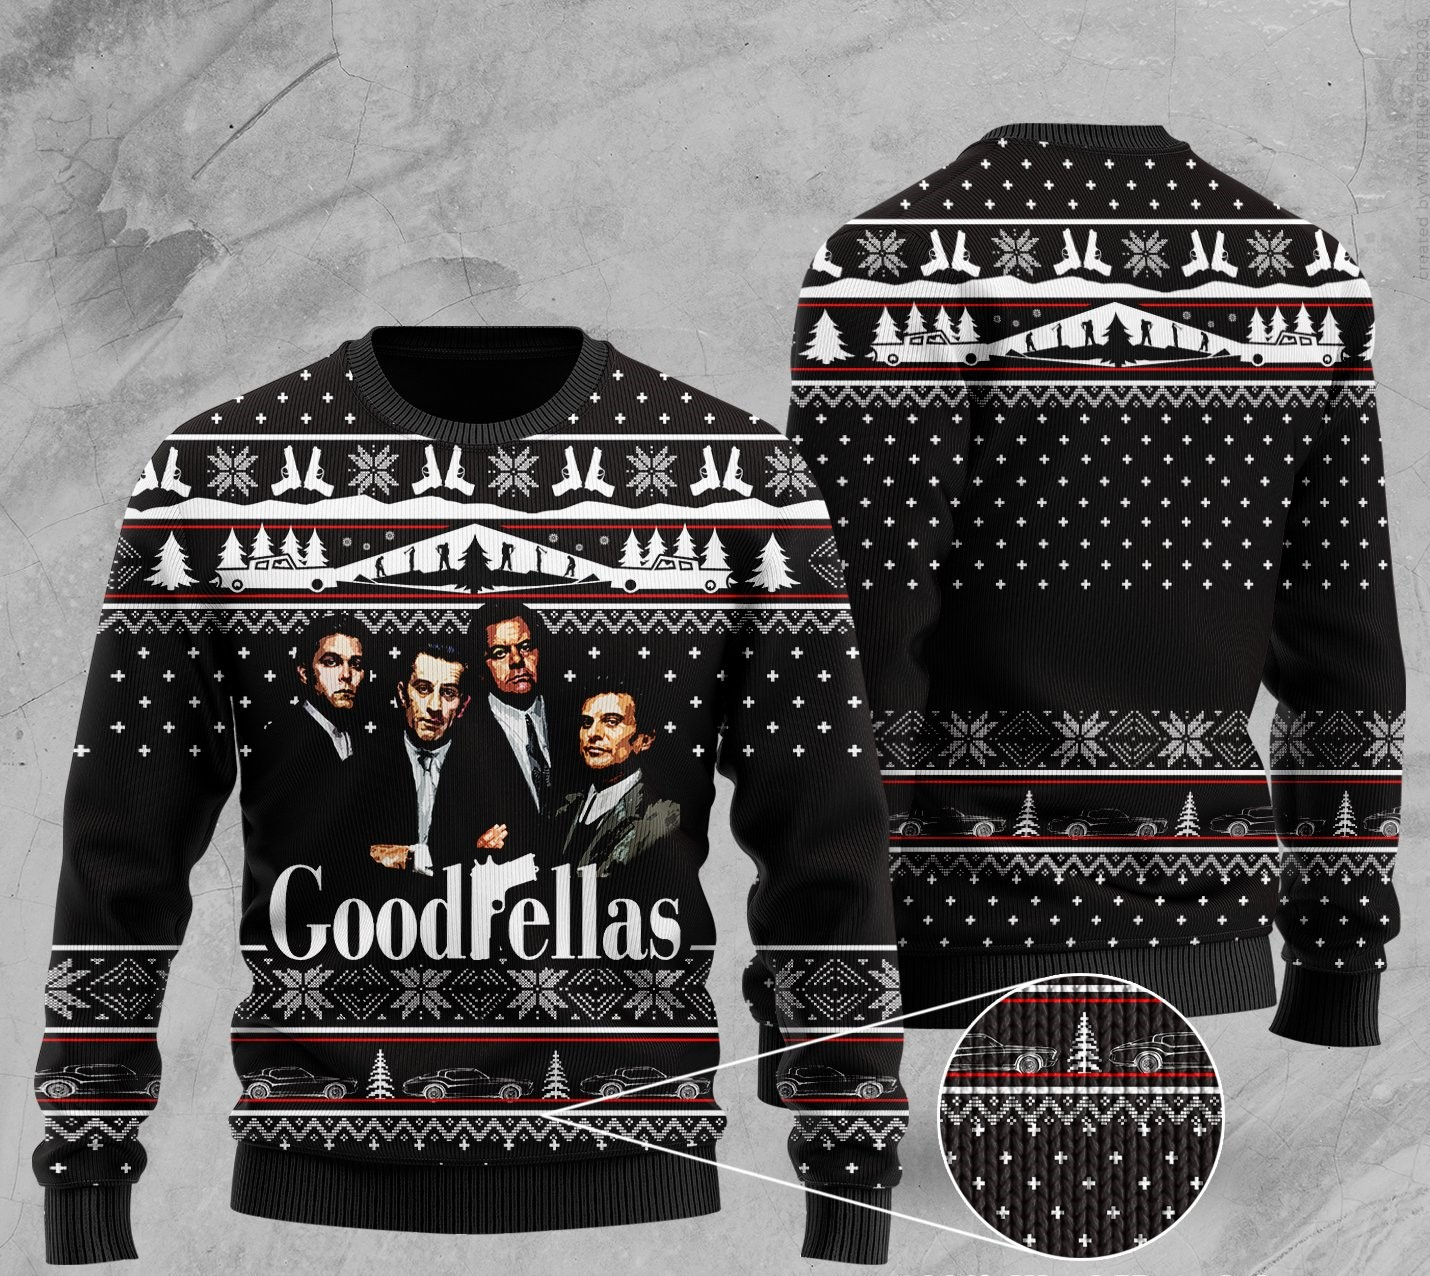 goodfellas all over printed ugly christmas sweater 2